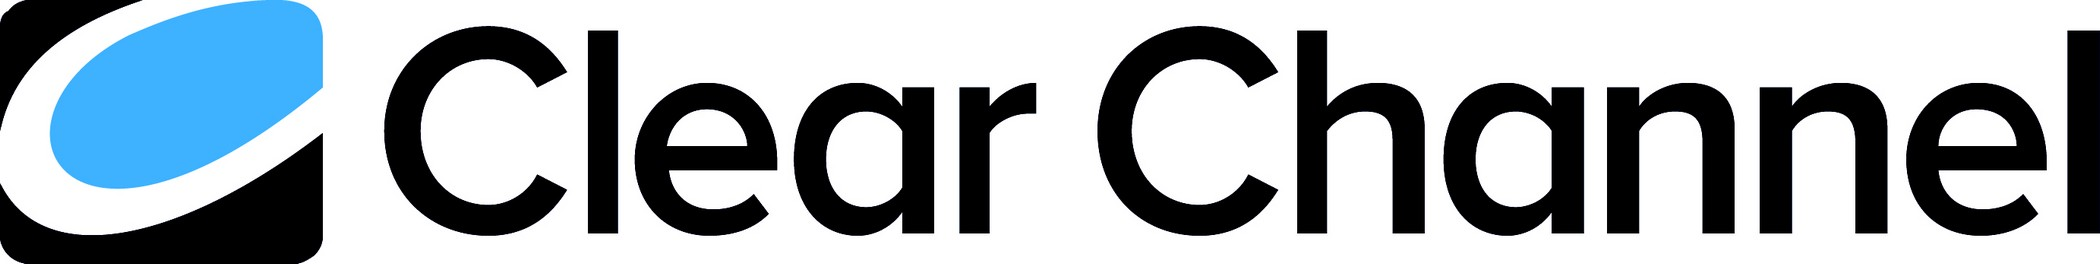 Clear Channel Logo png